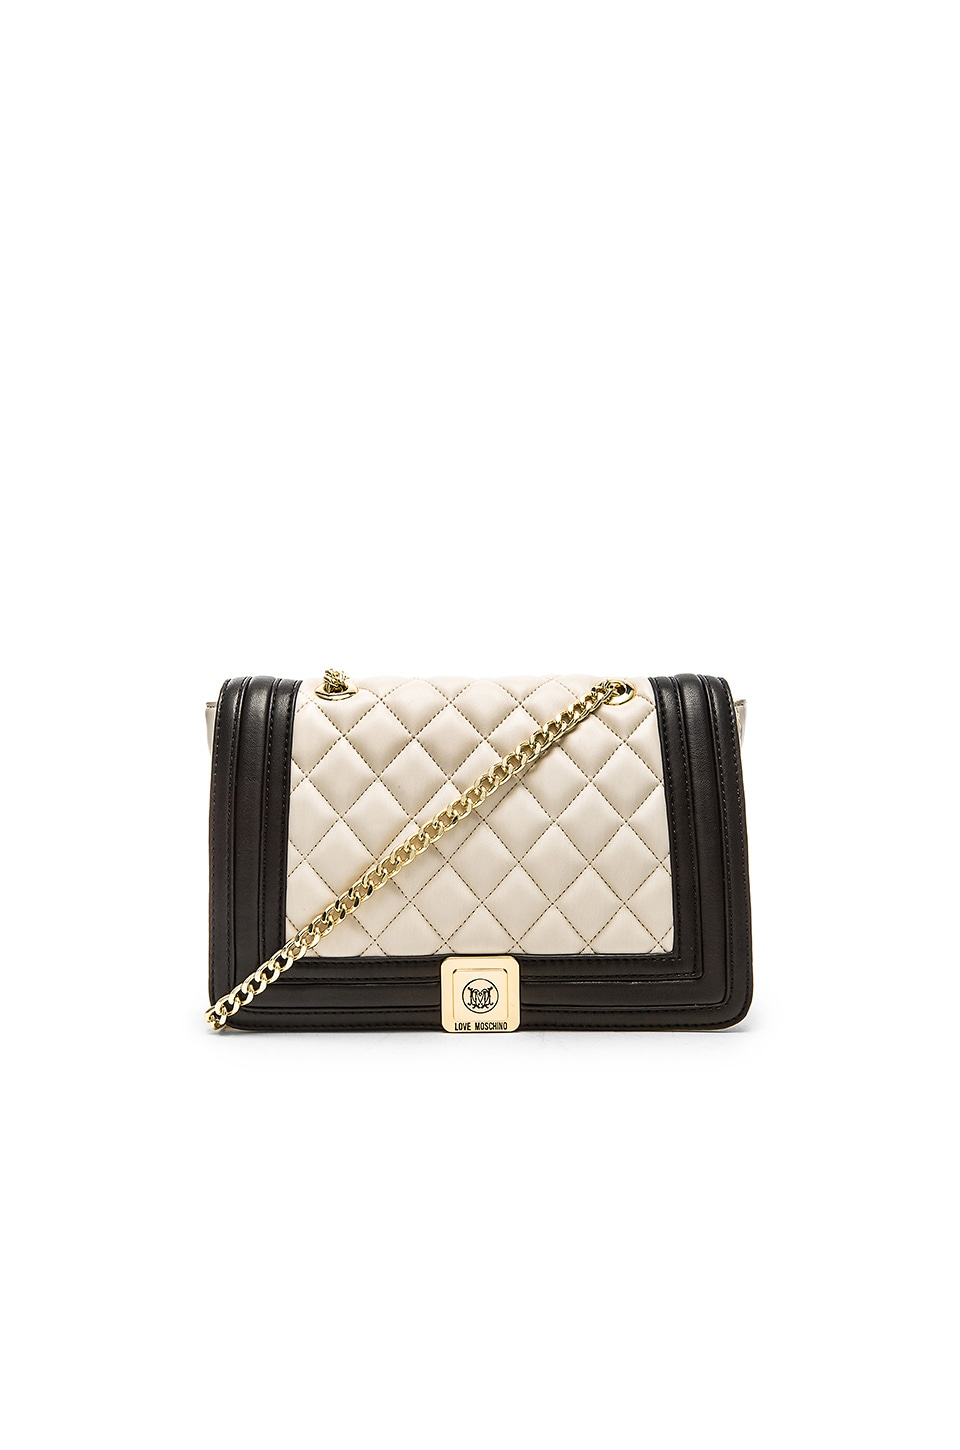 Love Moschino Quilted Shoulder Bag in Cream & Black | REVOLVE : moschino quilted shoulder bag - Adamdwight.com